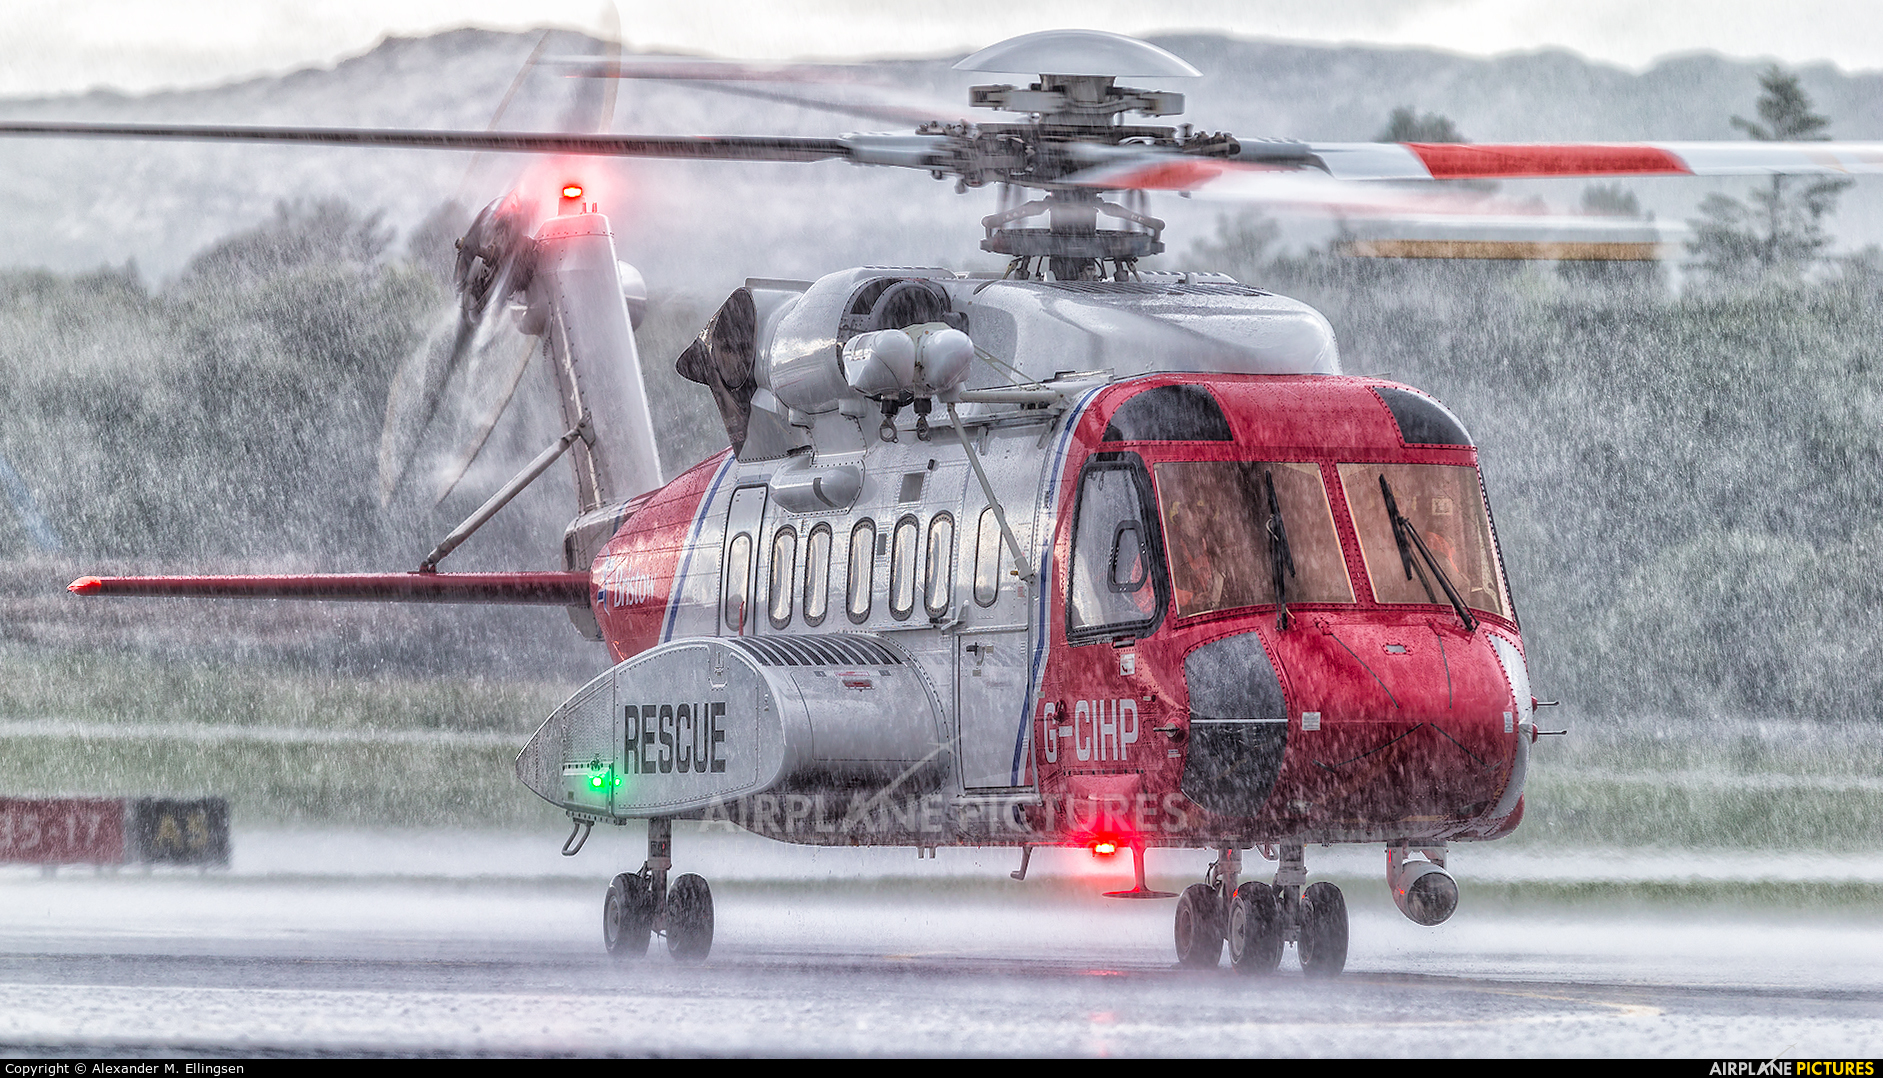 Bristow Helicopters G-CIHP aircraft at Bergen - Flesland